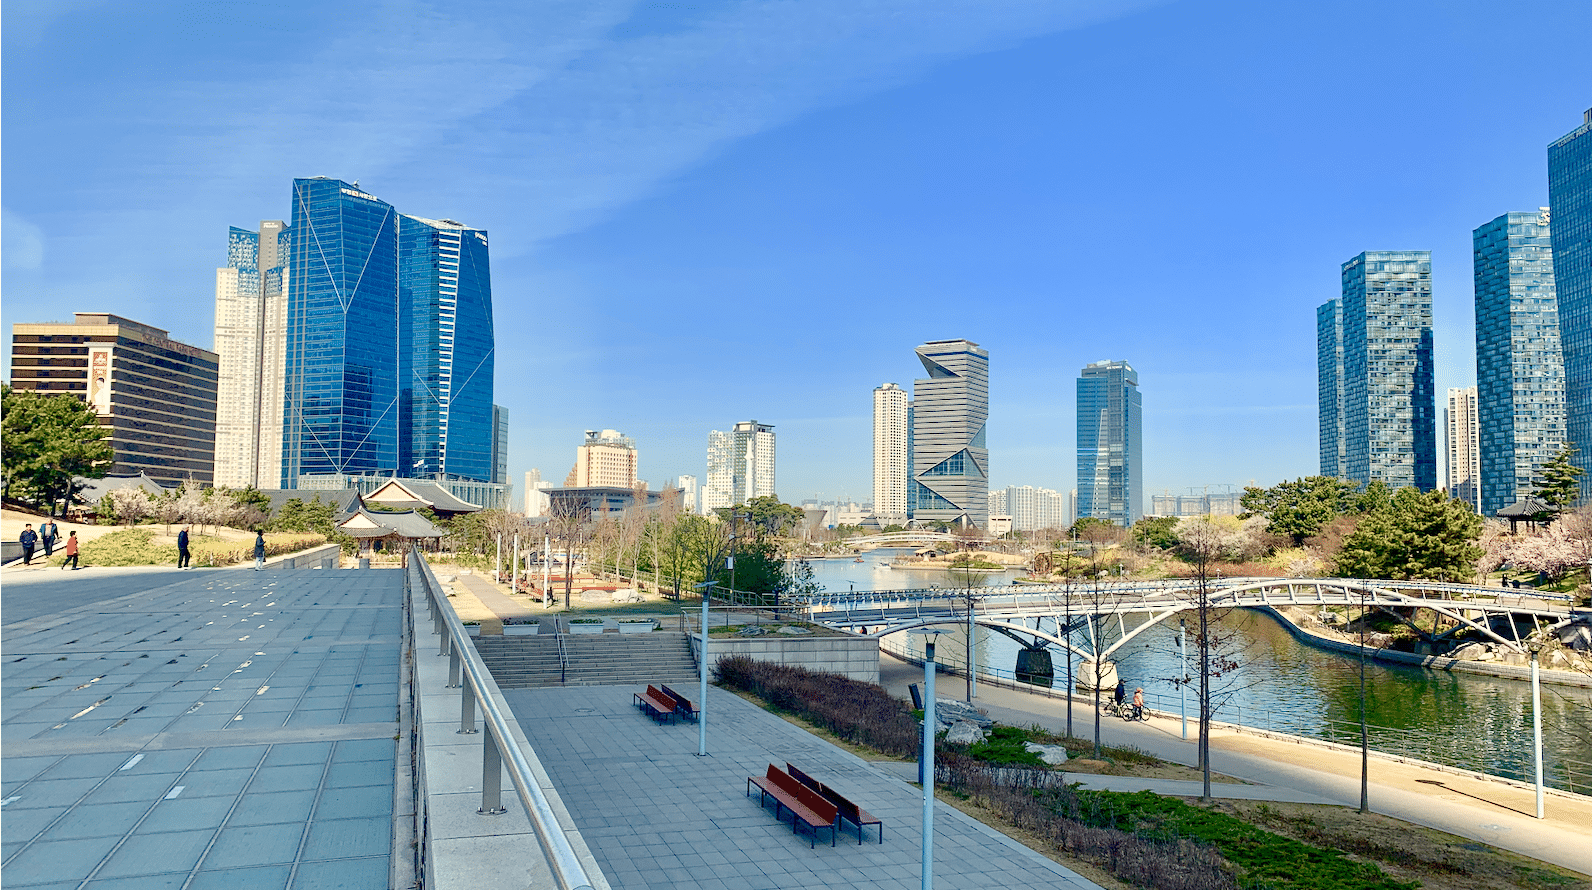 songdo is the smartest city in the world